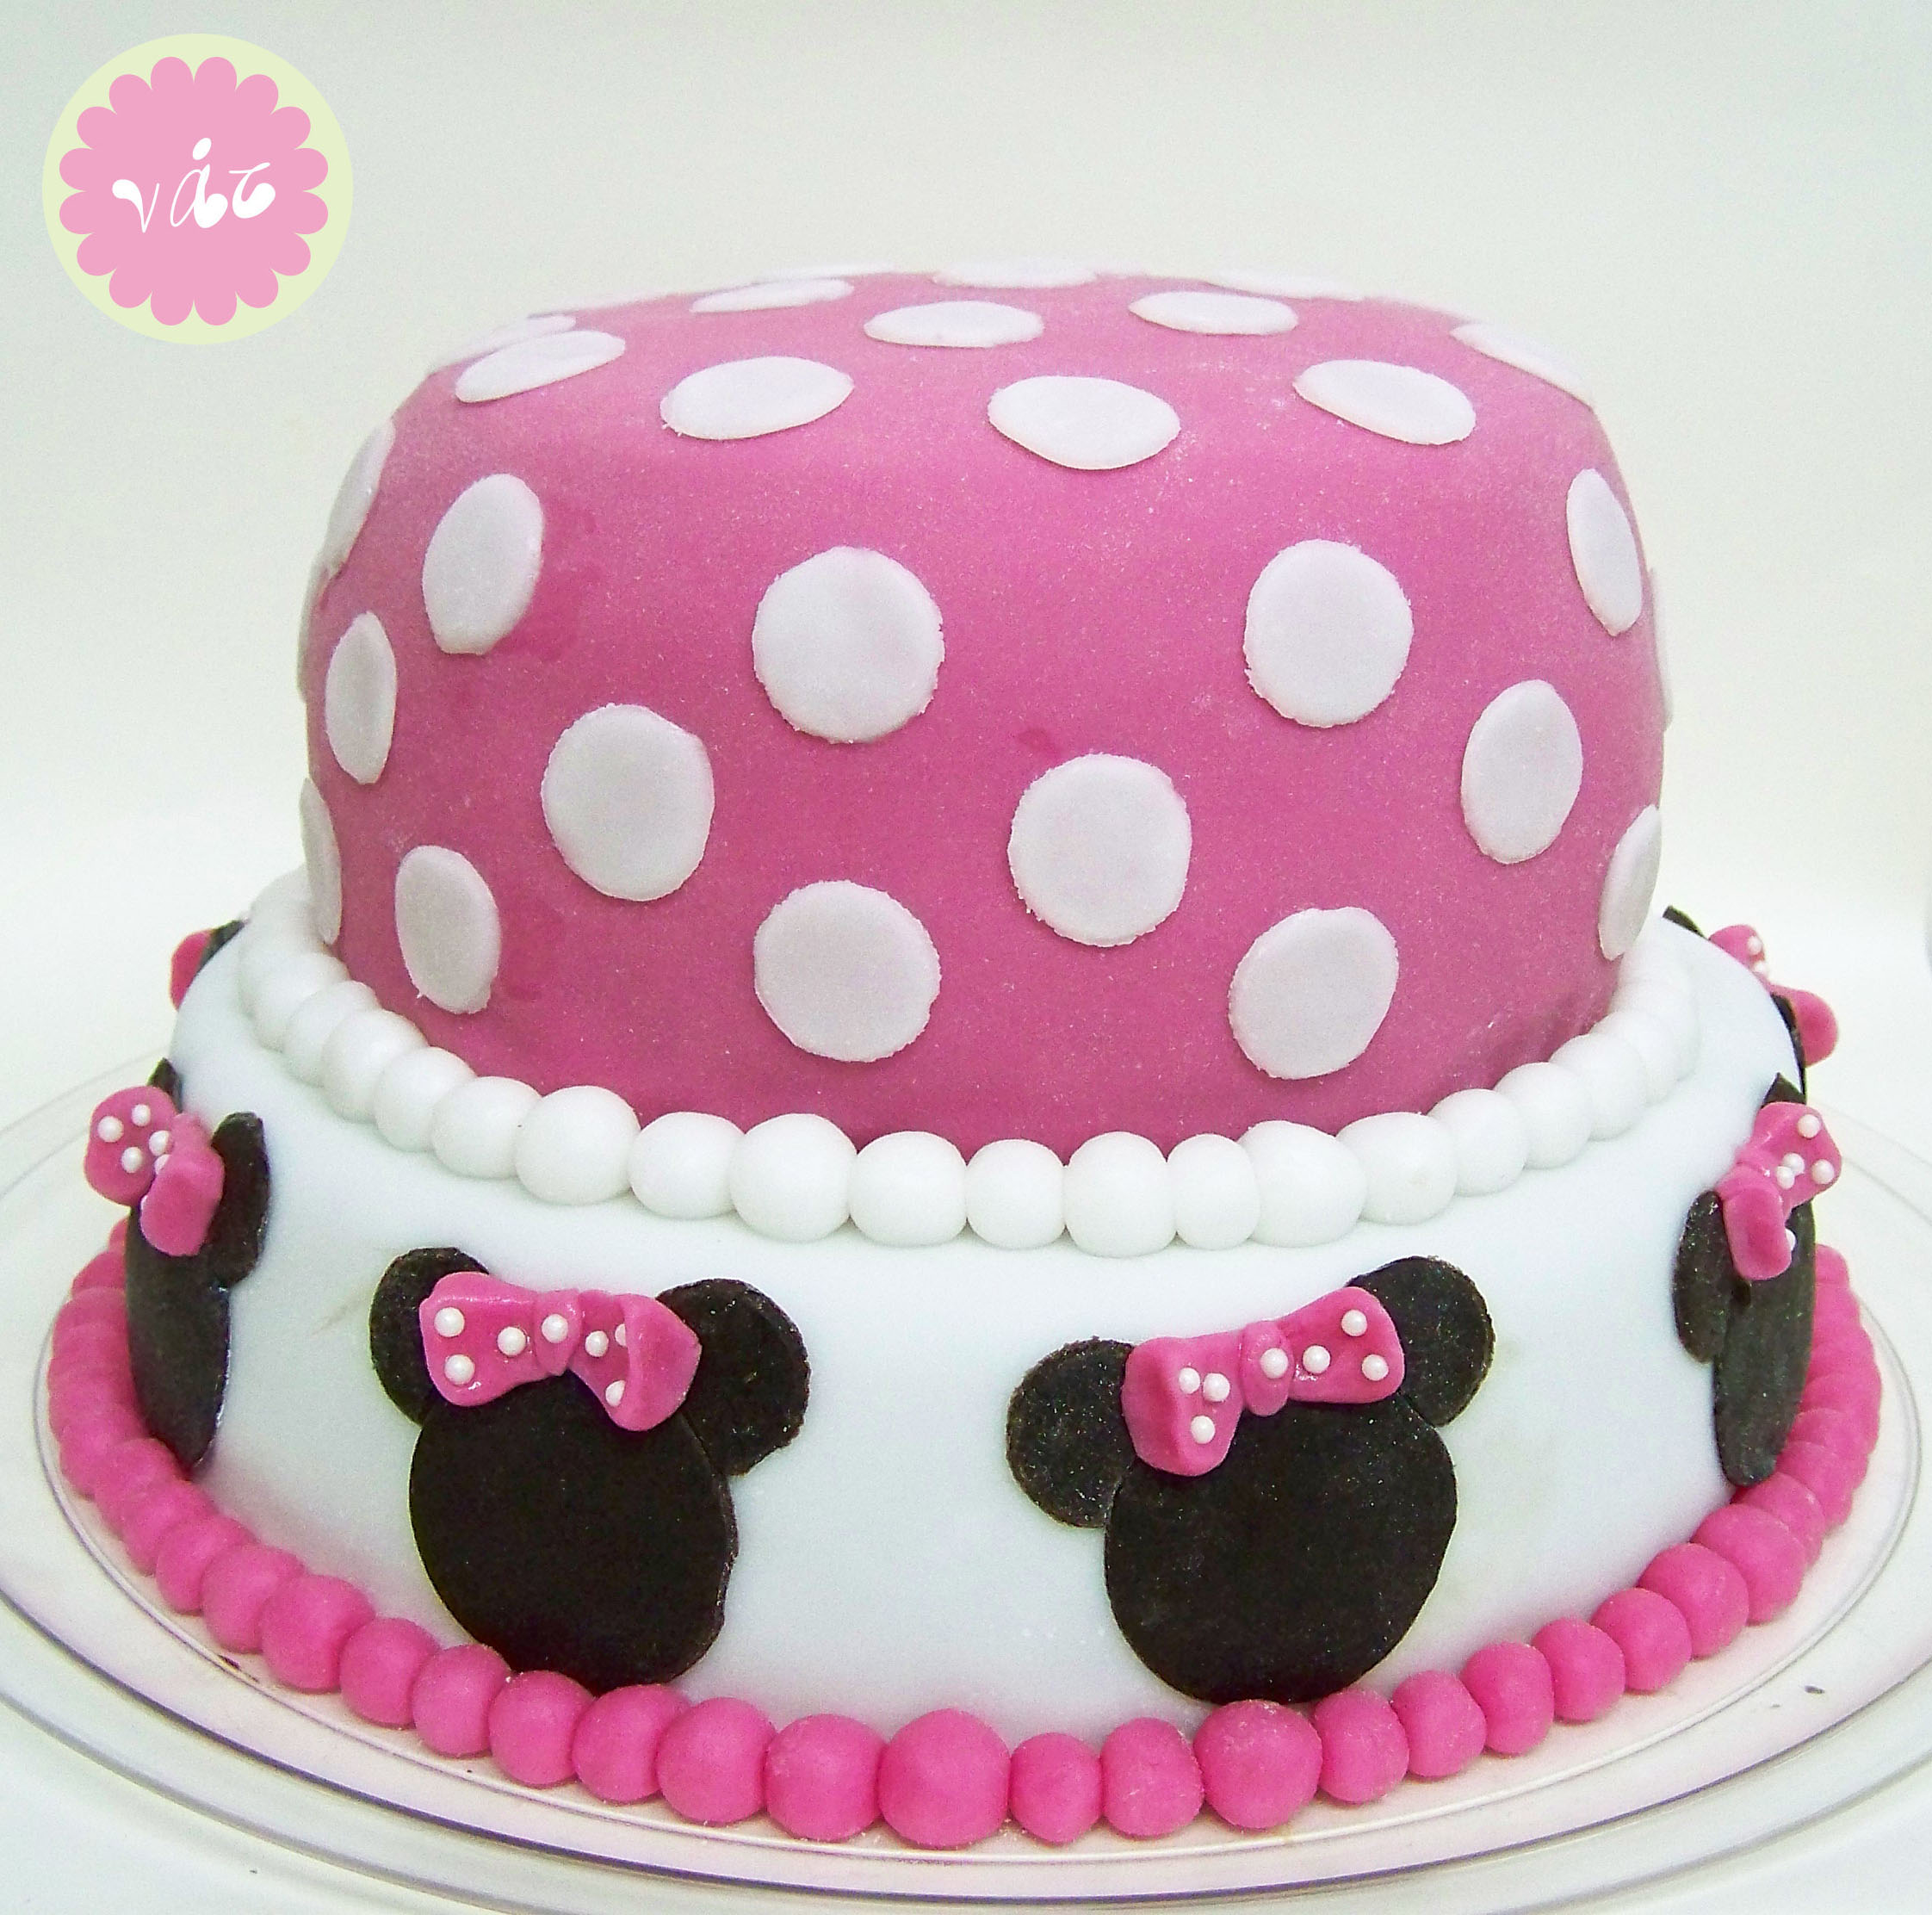 Dolci Creativi Di Sarù Torte Decorate Torta Principessa Barbie